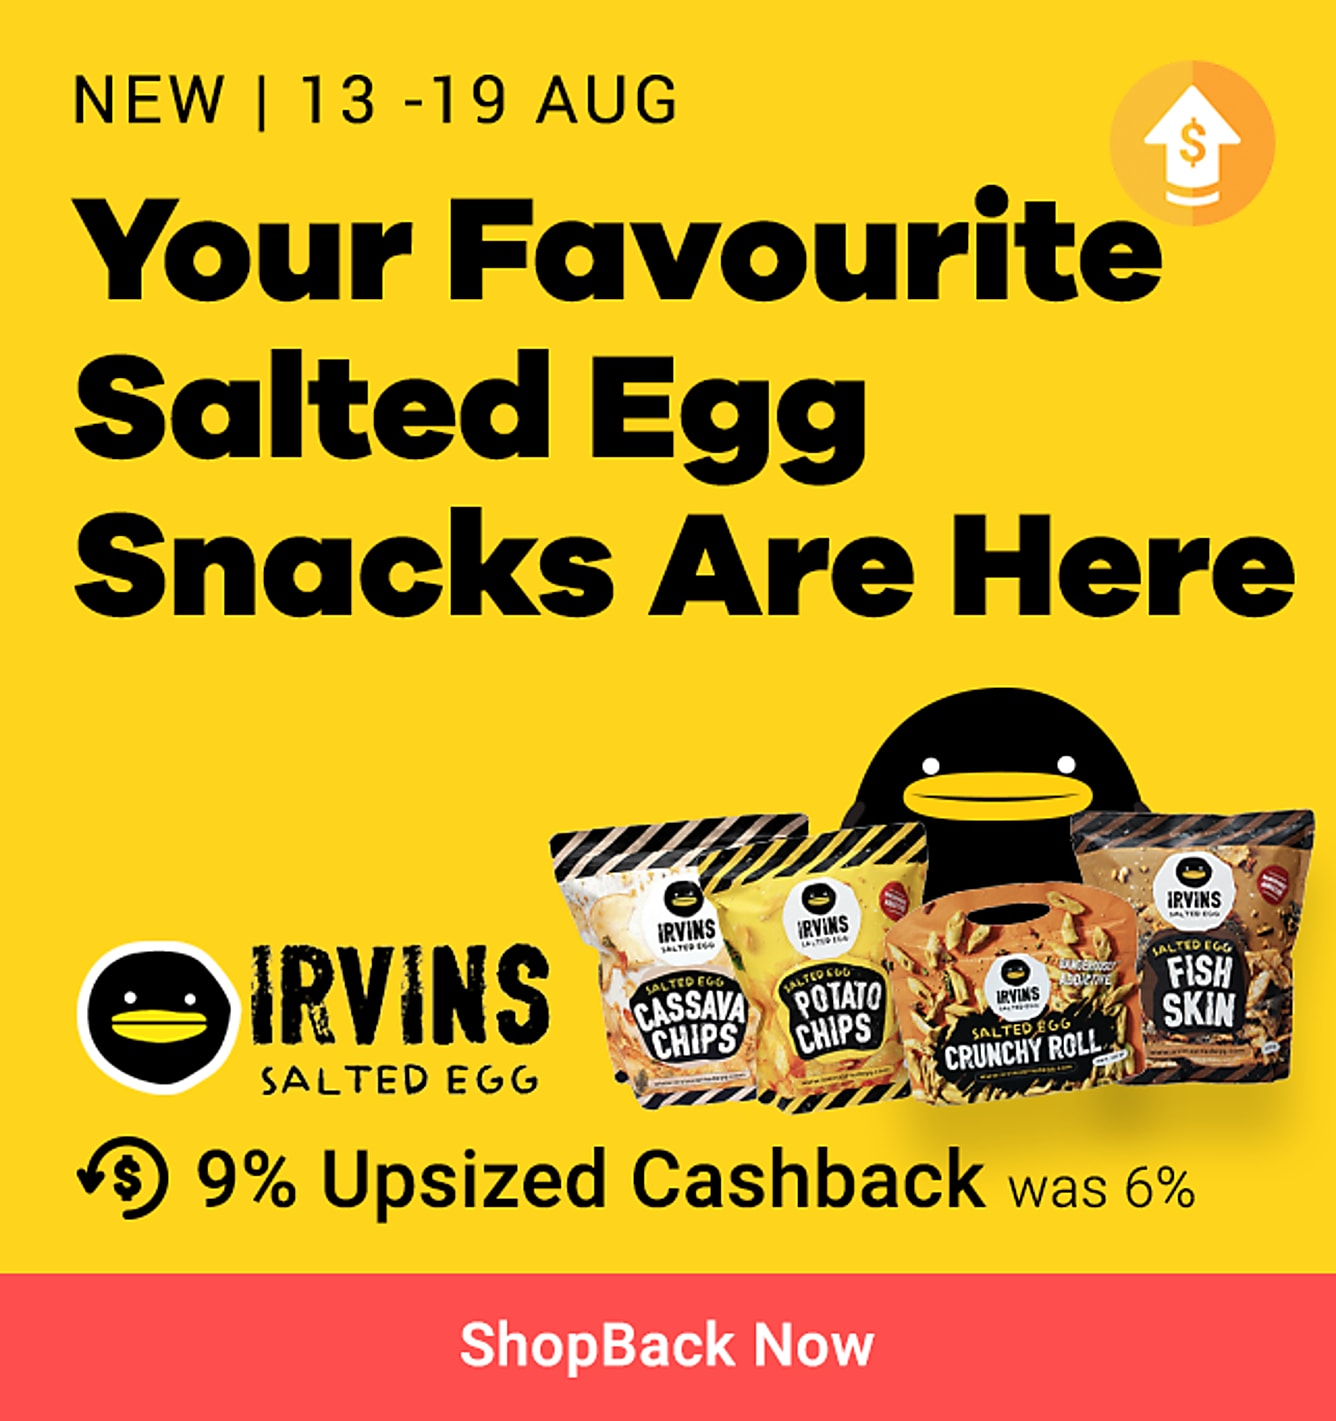 NEW launch Irvin's salted egg 9% upsized cashback (was 6%) 13-19 Aug (cannot remove)